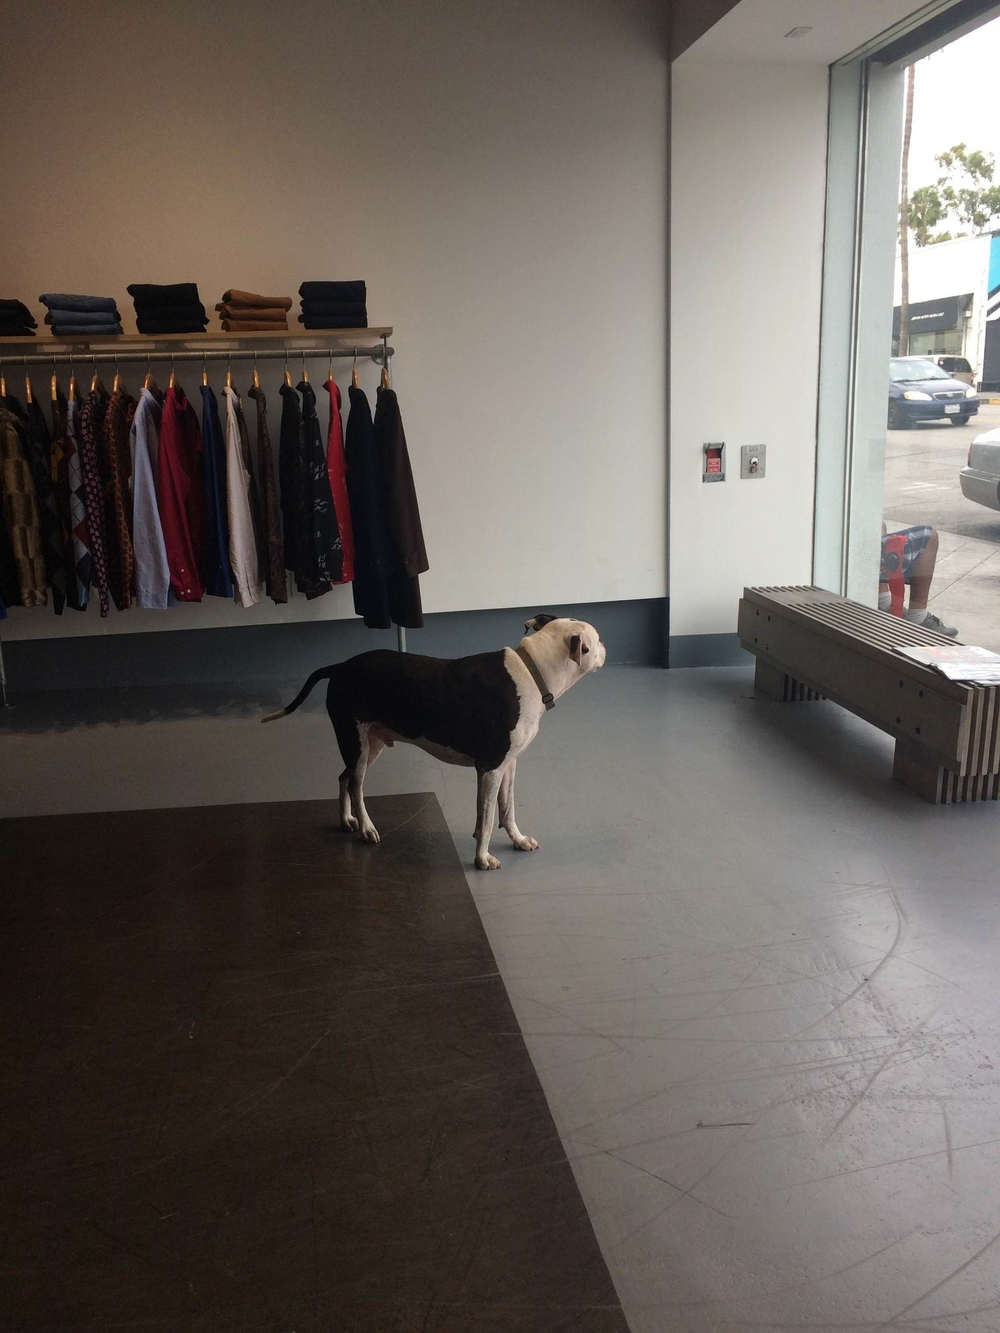 In Fairfax, we experienced the first taste of LA dog culture Dogs are allowed everywhere! Here's a shopdog hanging out